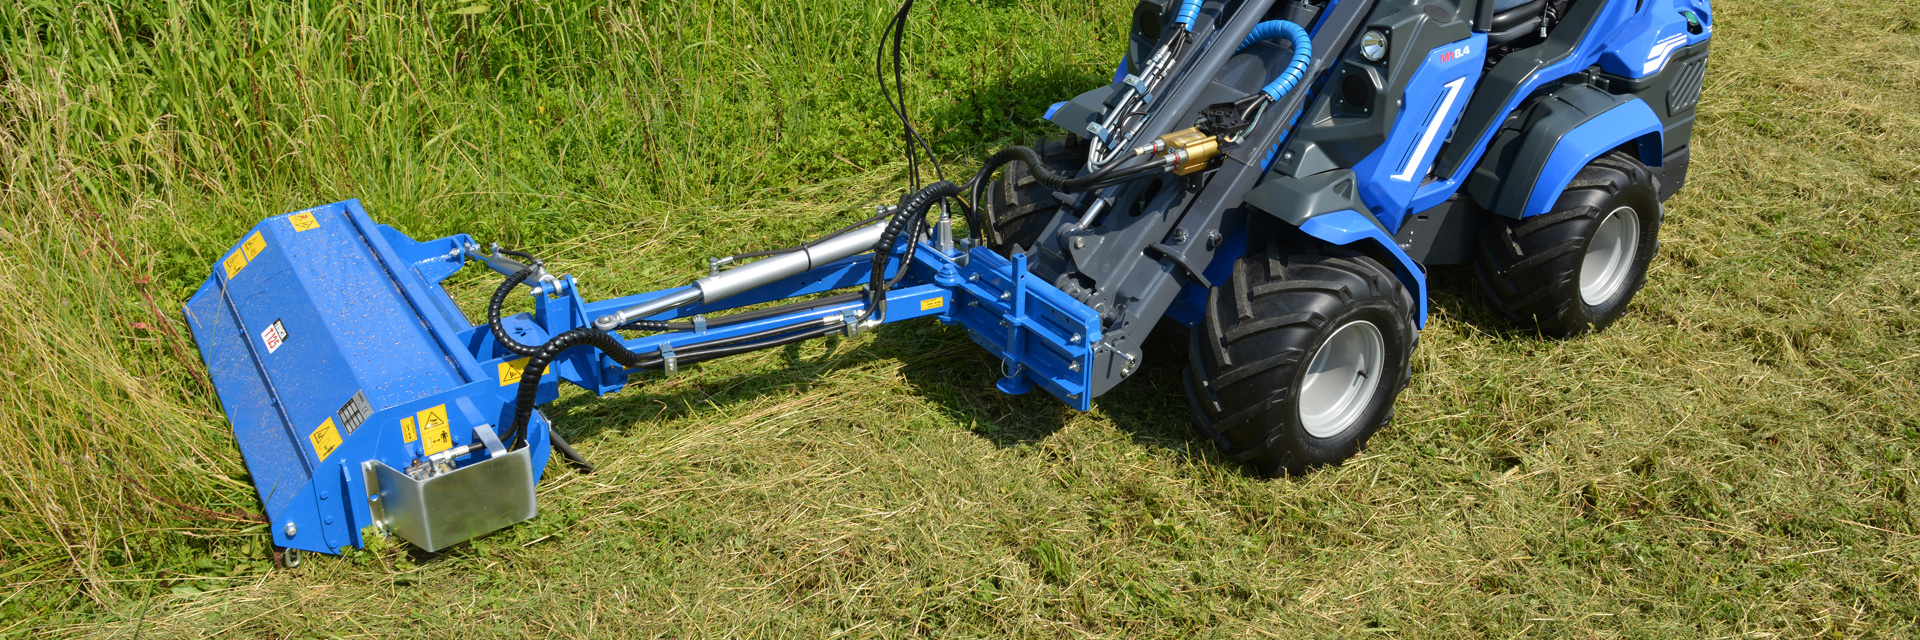 mini excavator flail mower with side shift